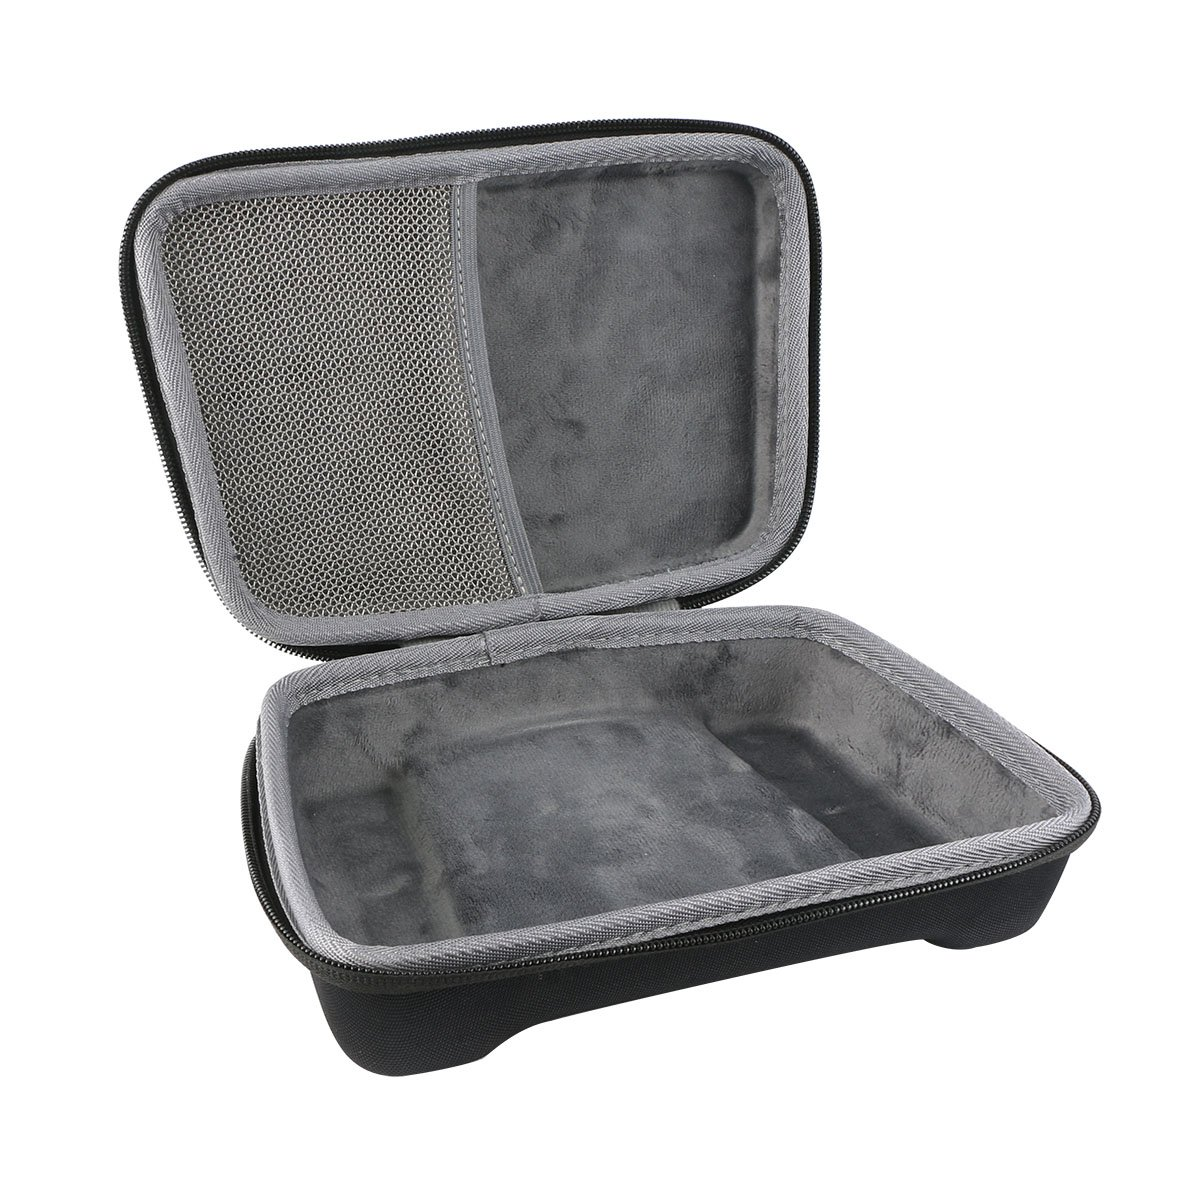 Hard Travel Case for Omron Fat Loss Monitor by co2CREA